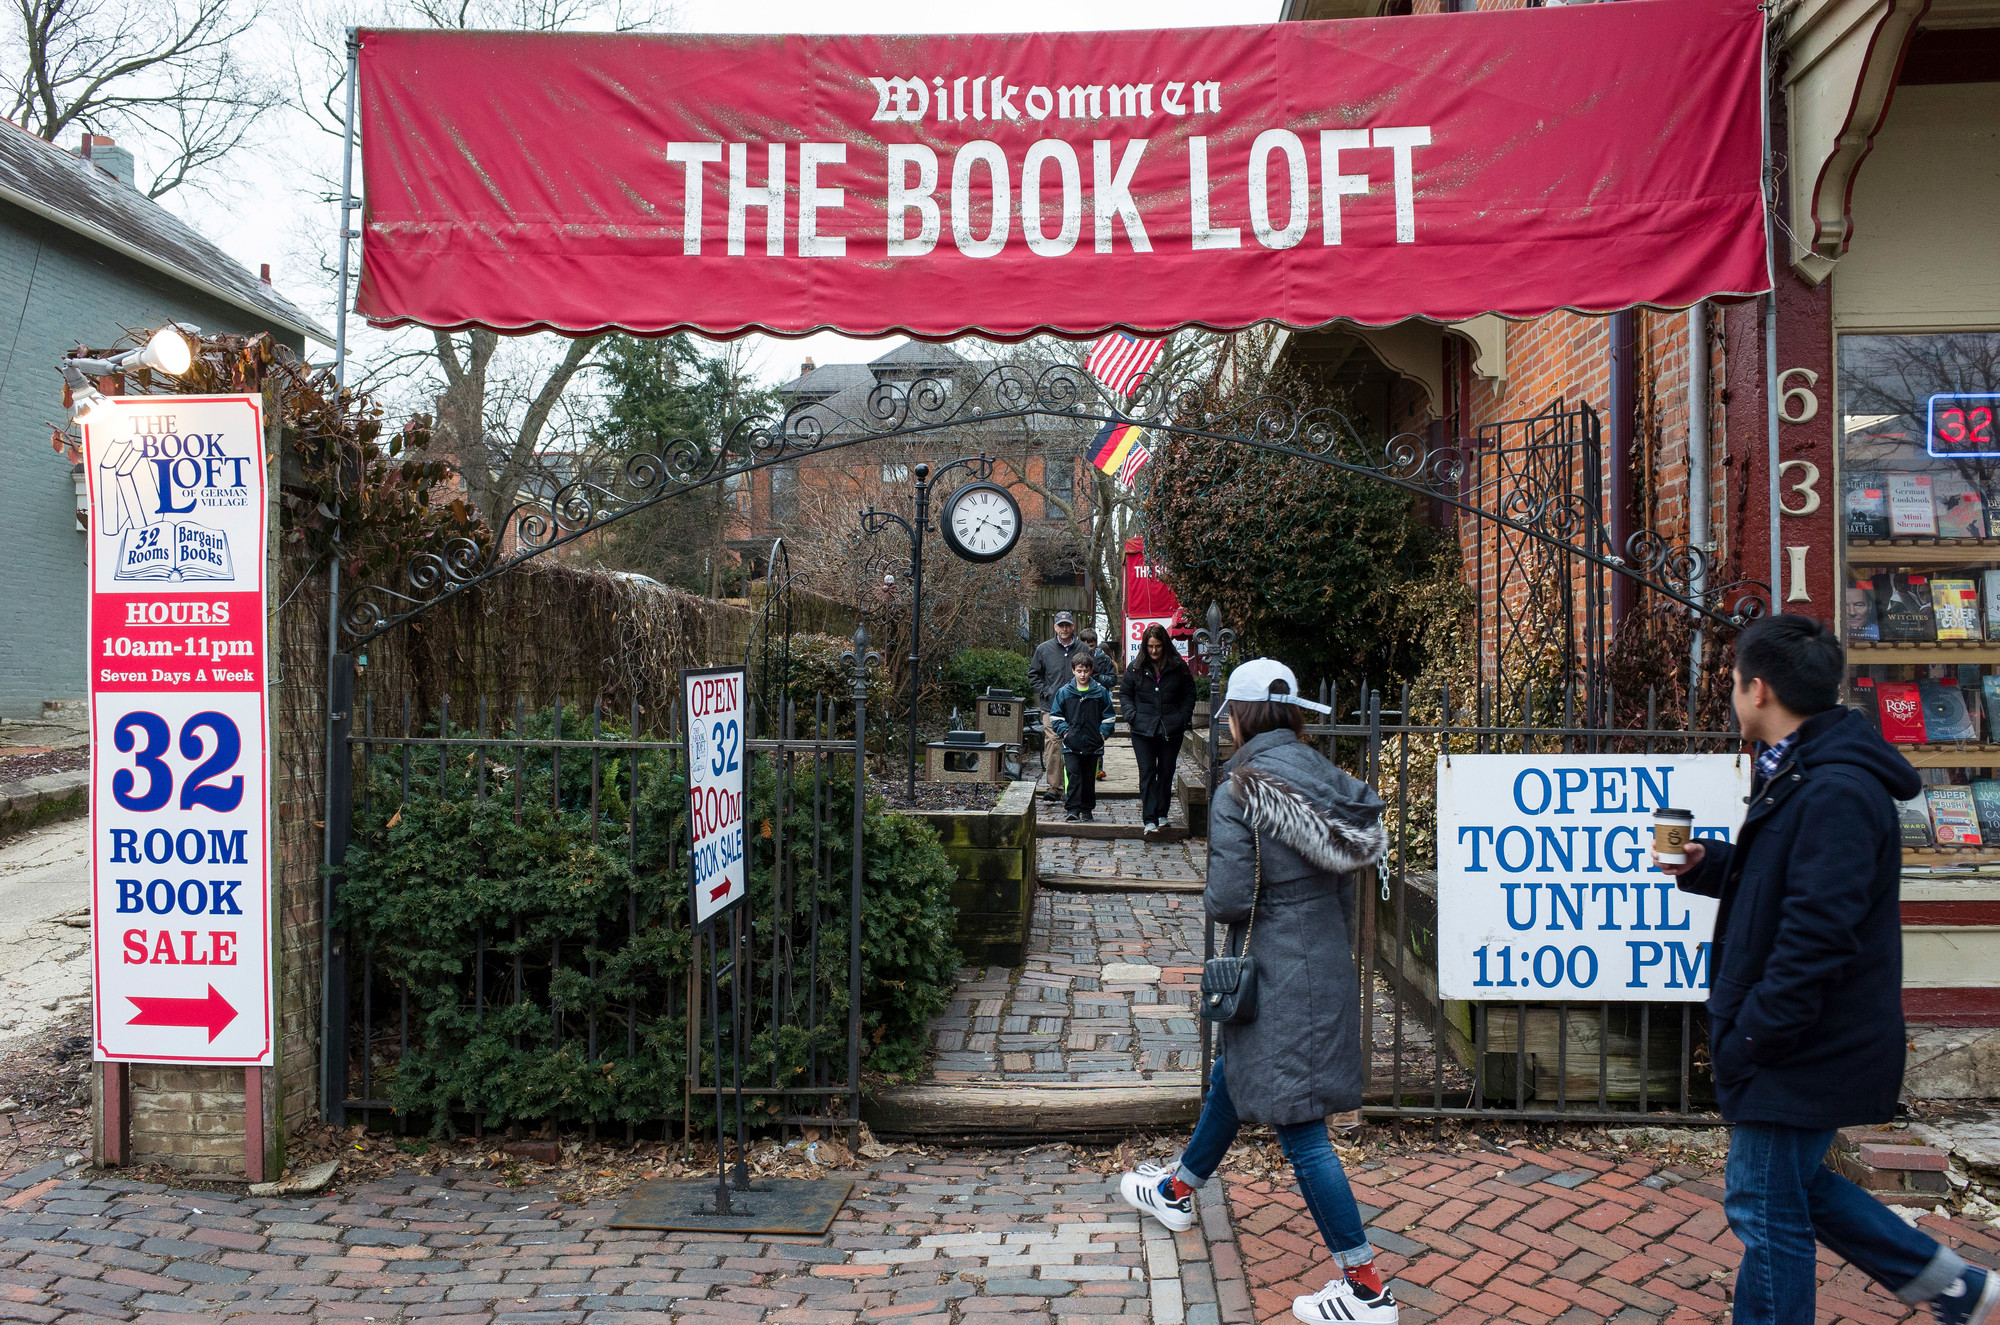 Customers approach the entrance to The Book Loft of German Village in Columbus, Ohio, on Feb. 17. The 40-year-old bookstore features 32 rooms of books.